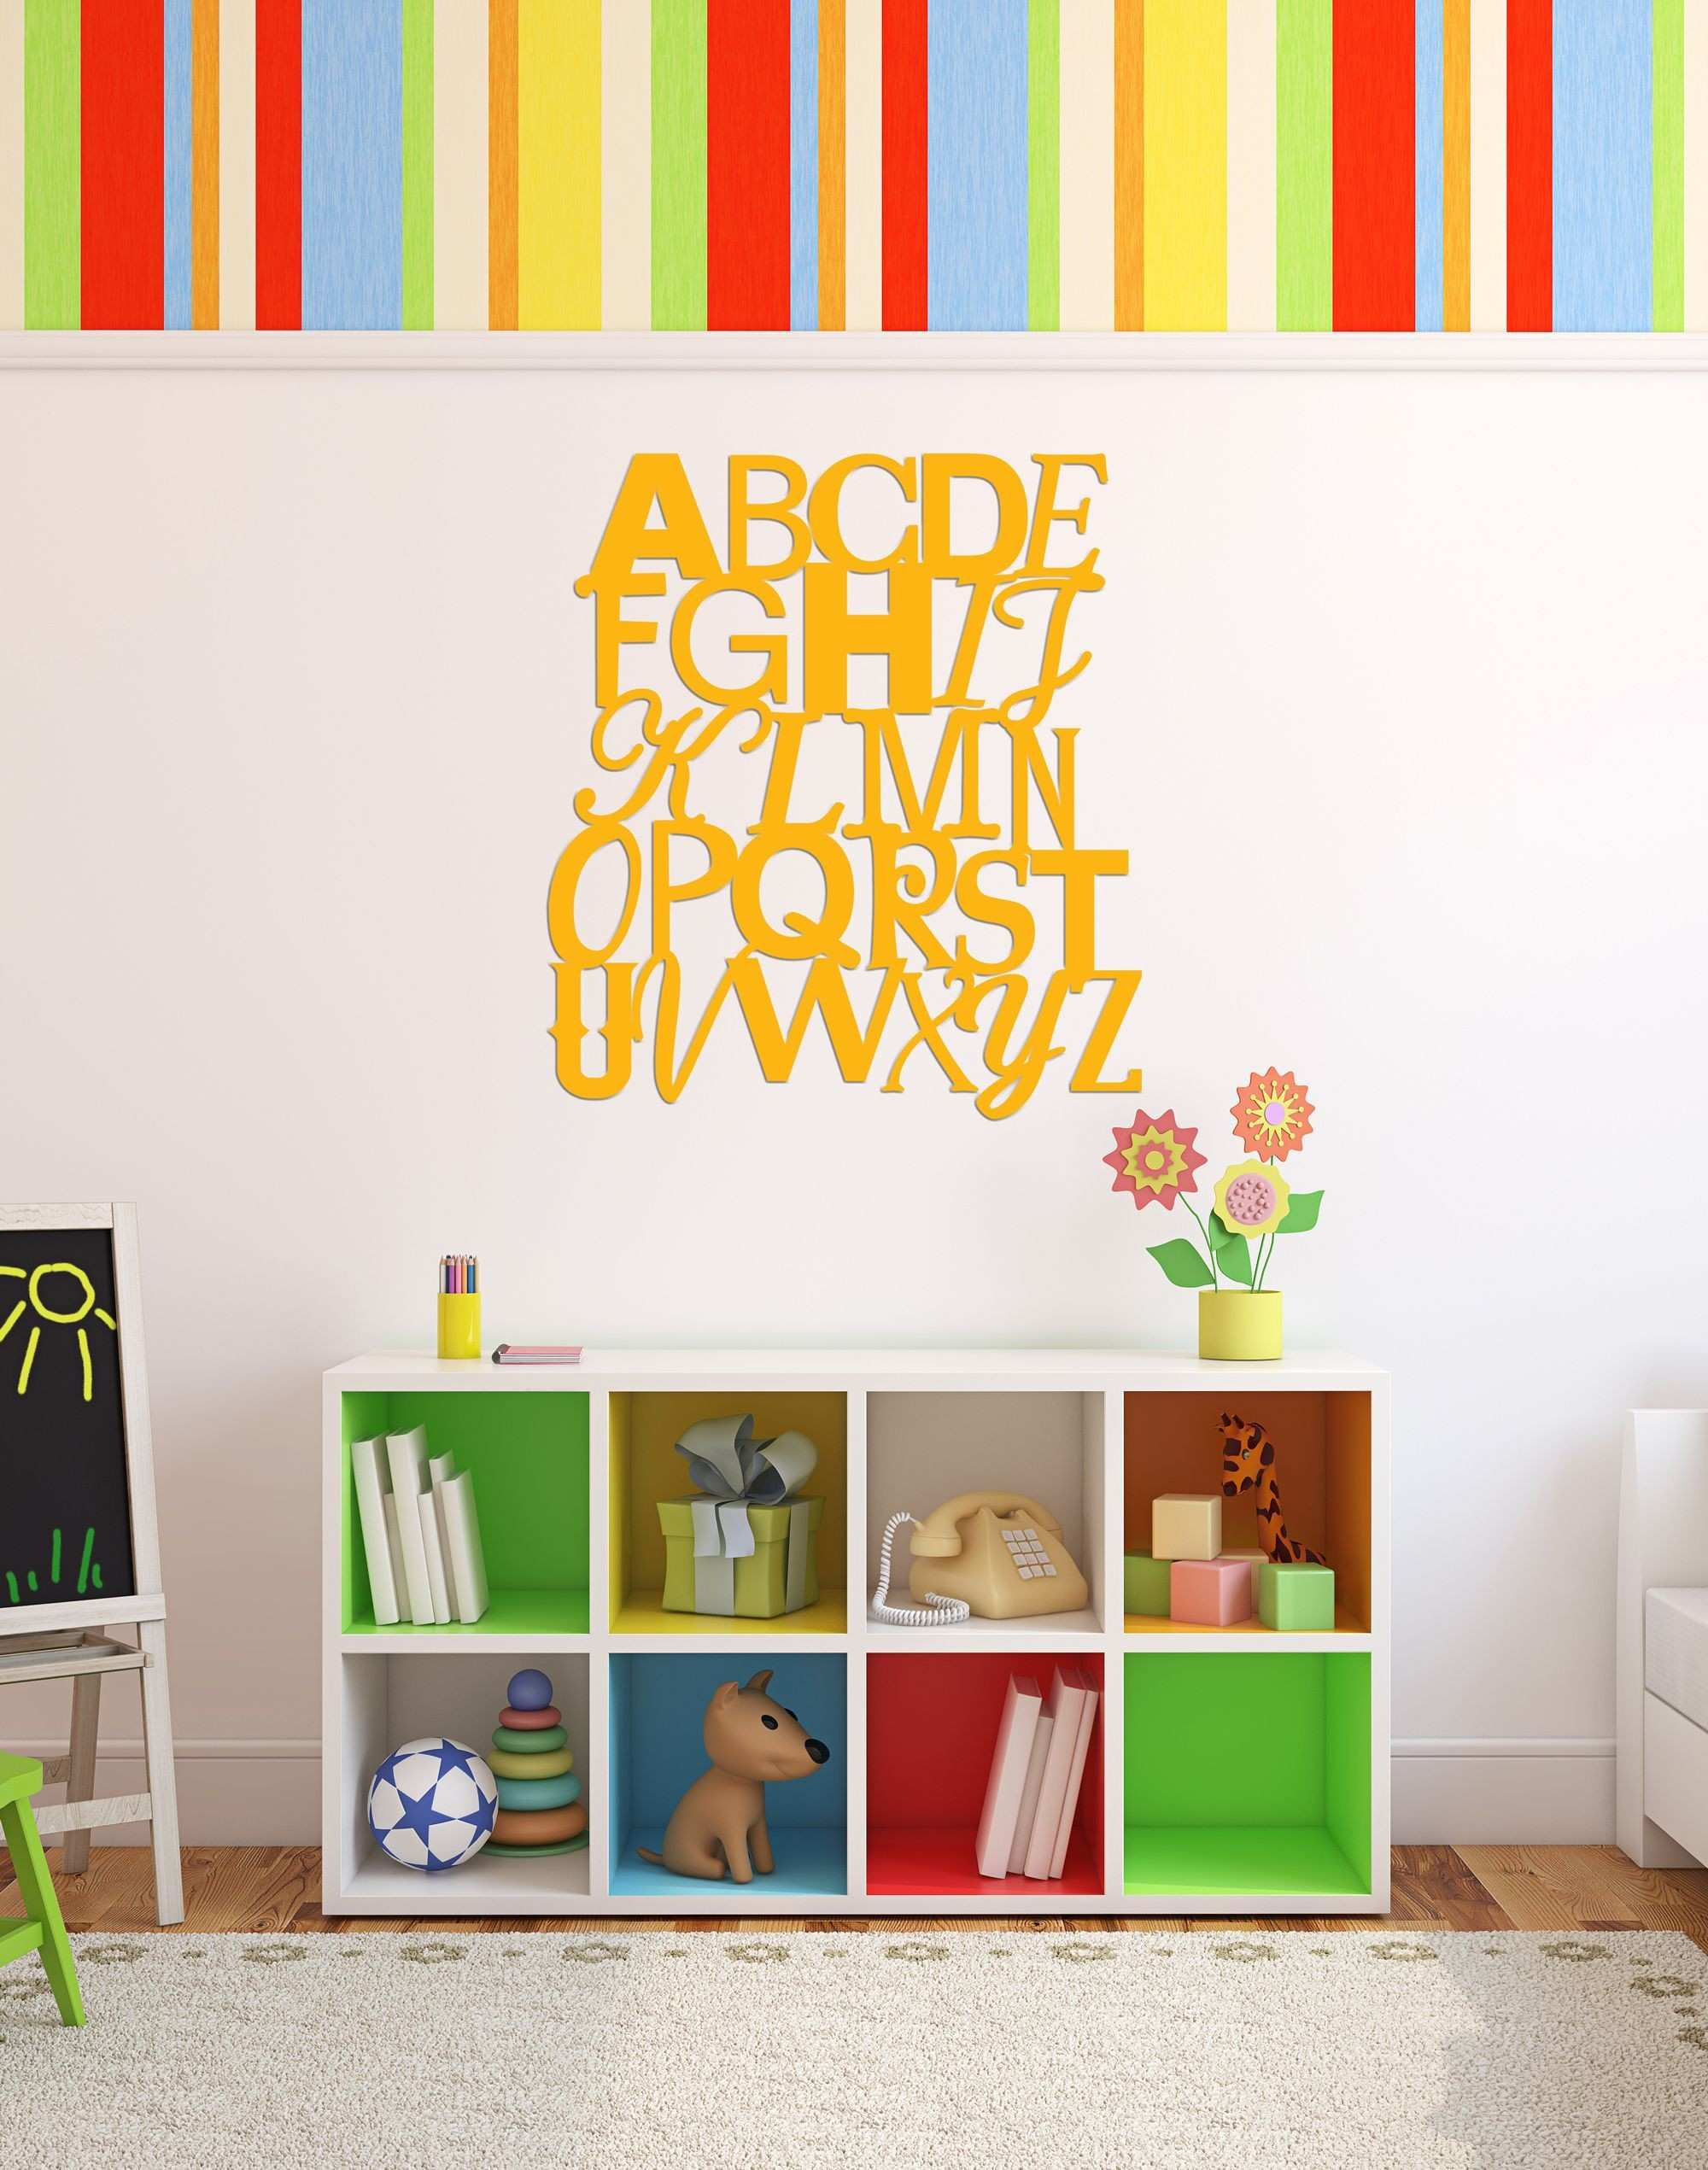 Artwork for Kids Room Beautiful Abc Wall Sign Artwork for Kids ...